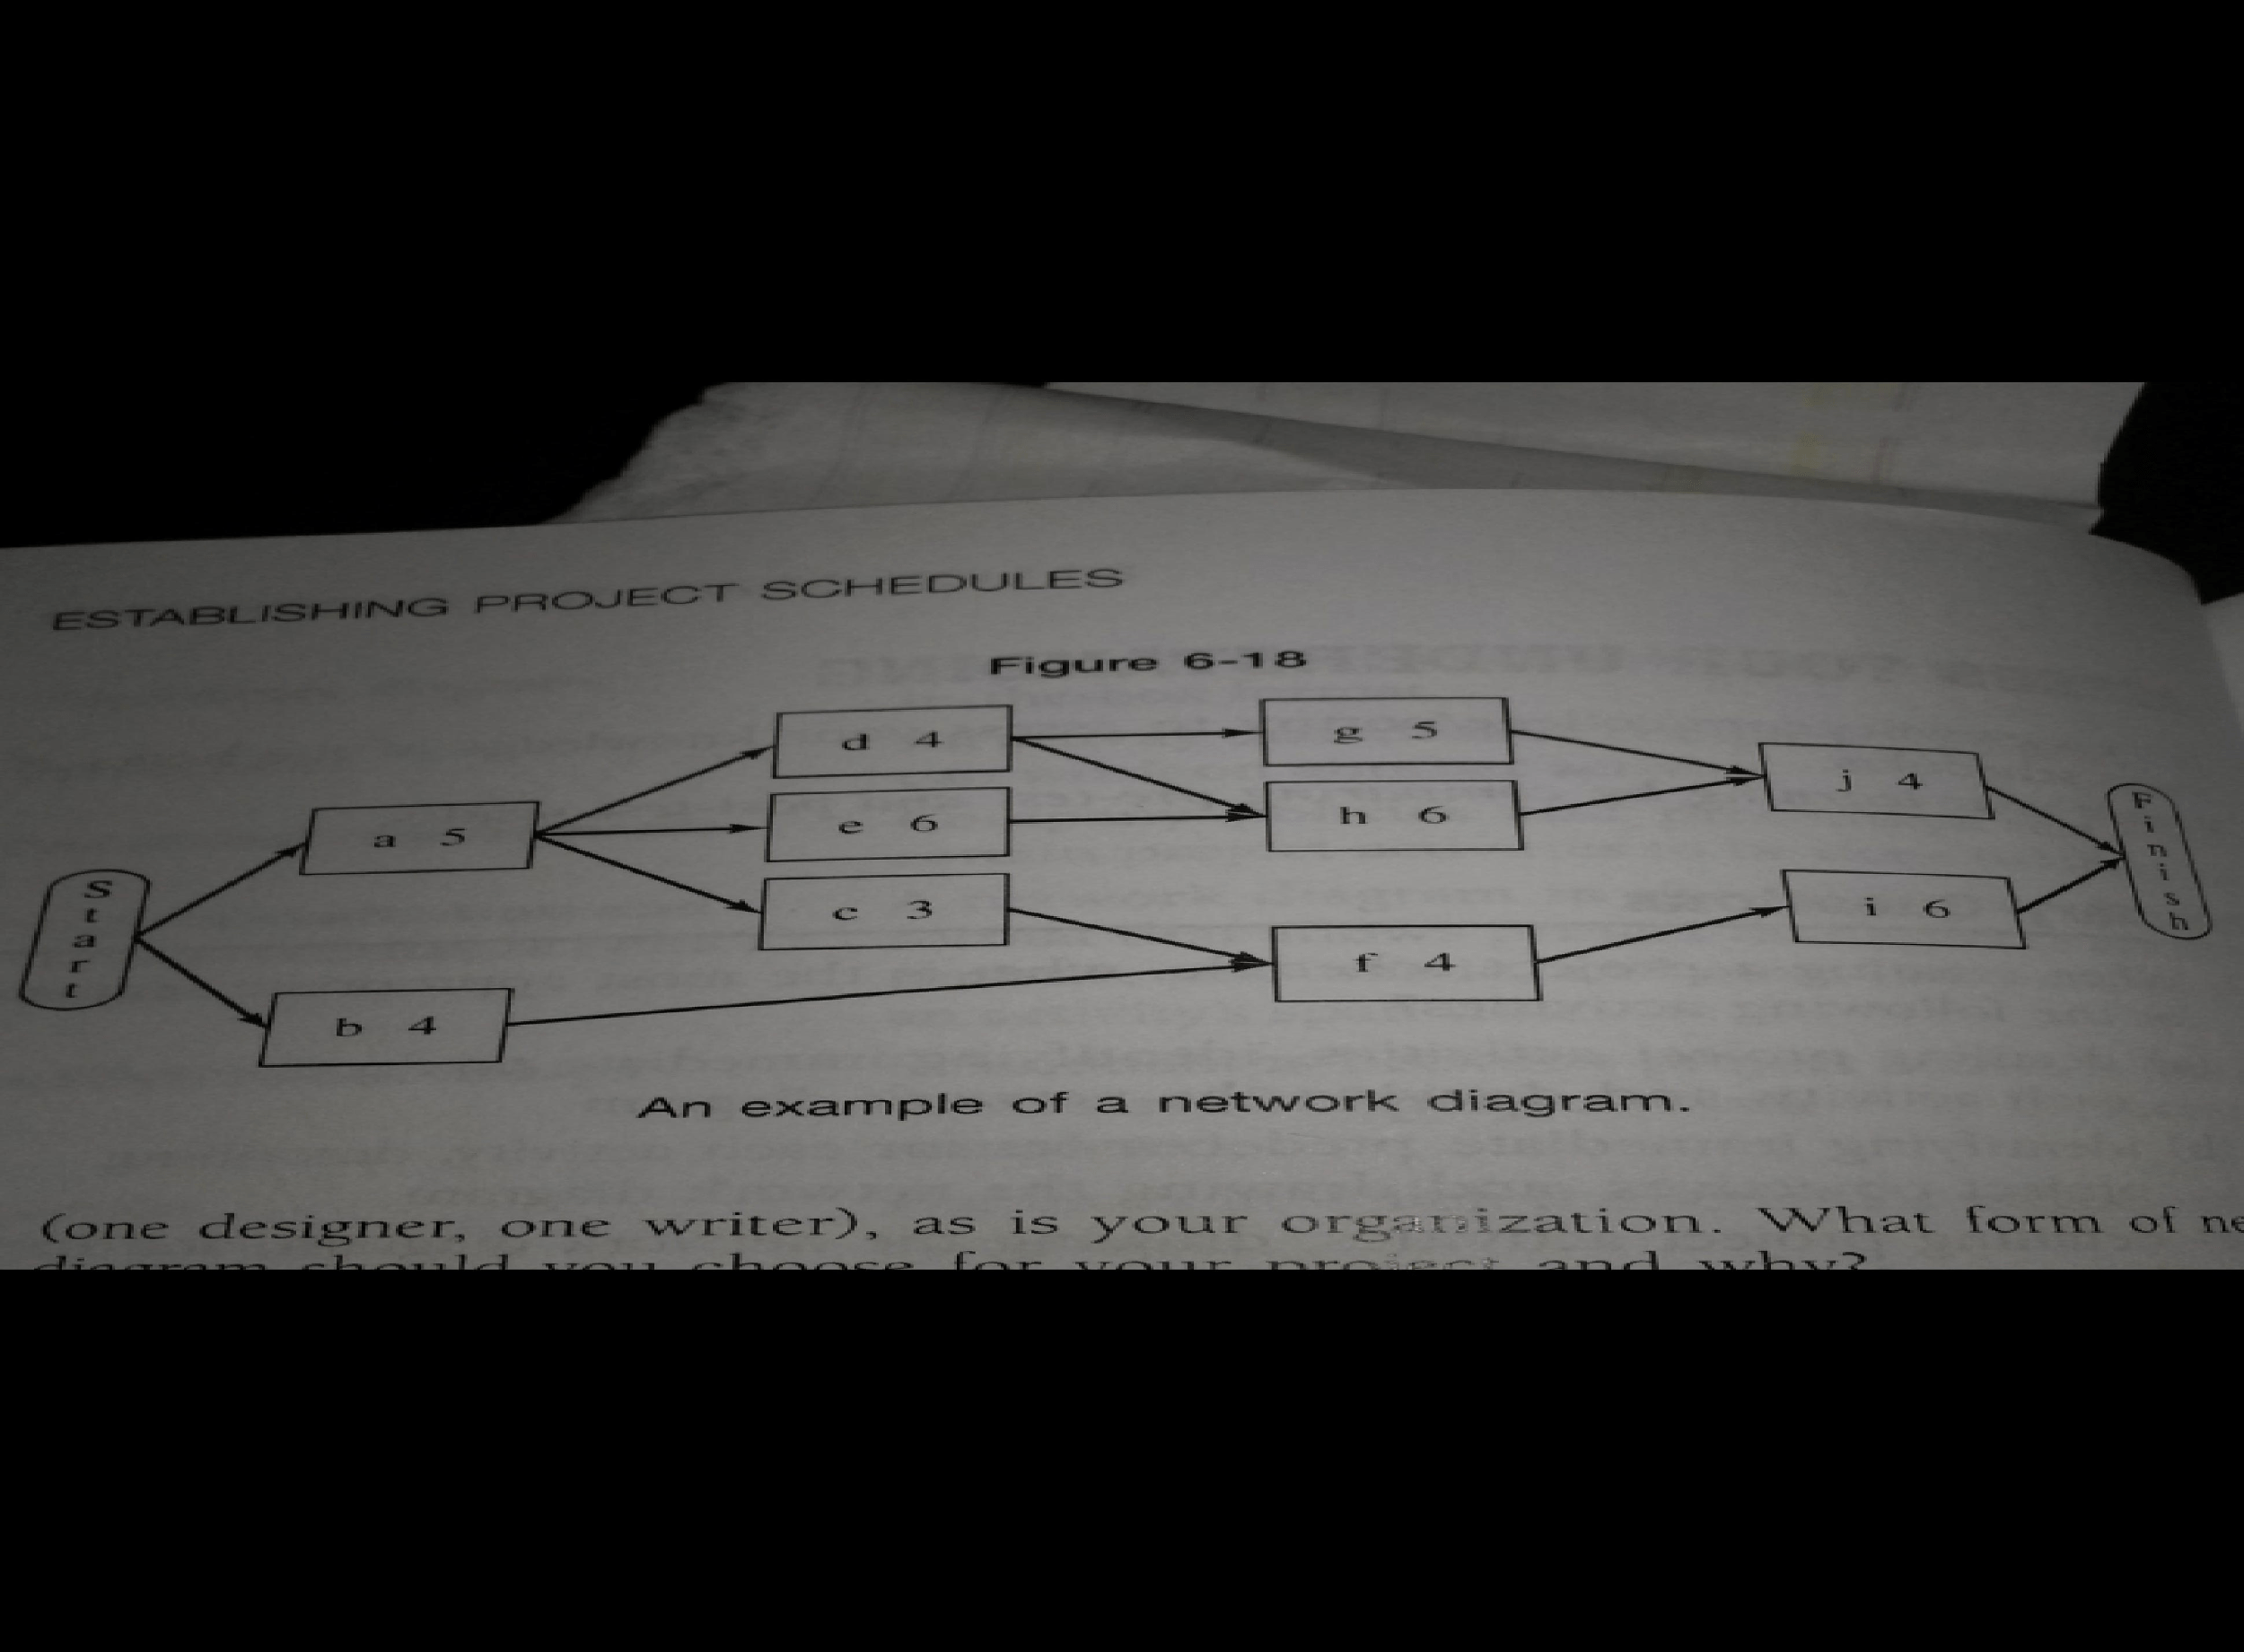 network diagram forward and backward pass sony car evaluate the in figure 6 18 on p